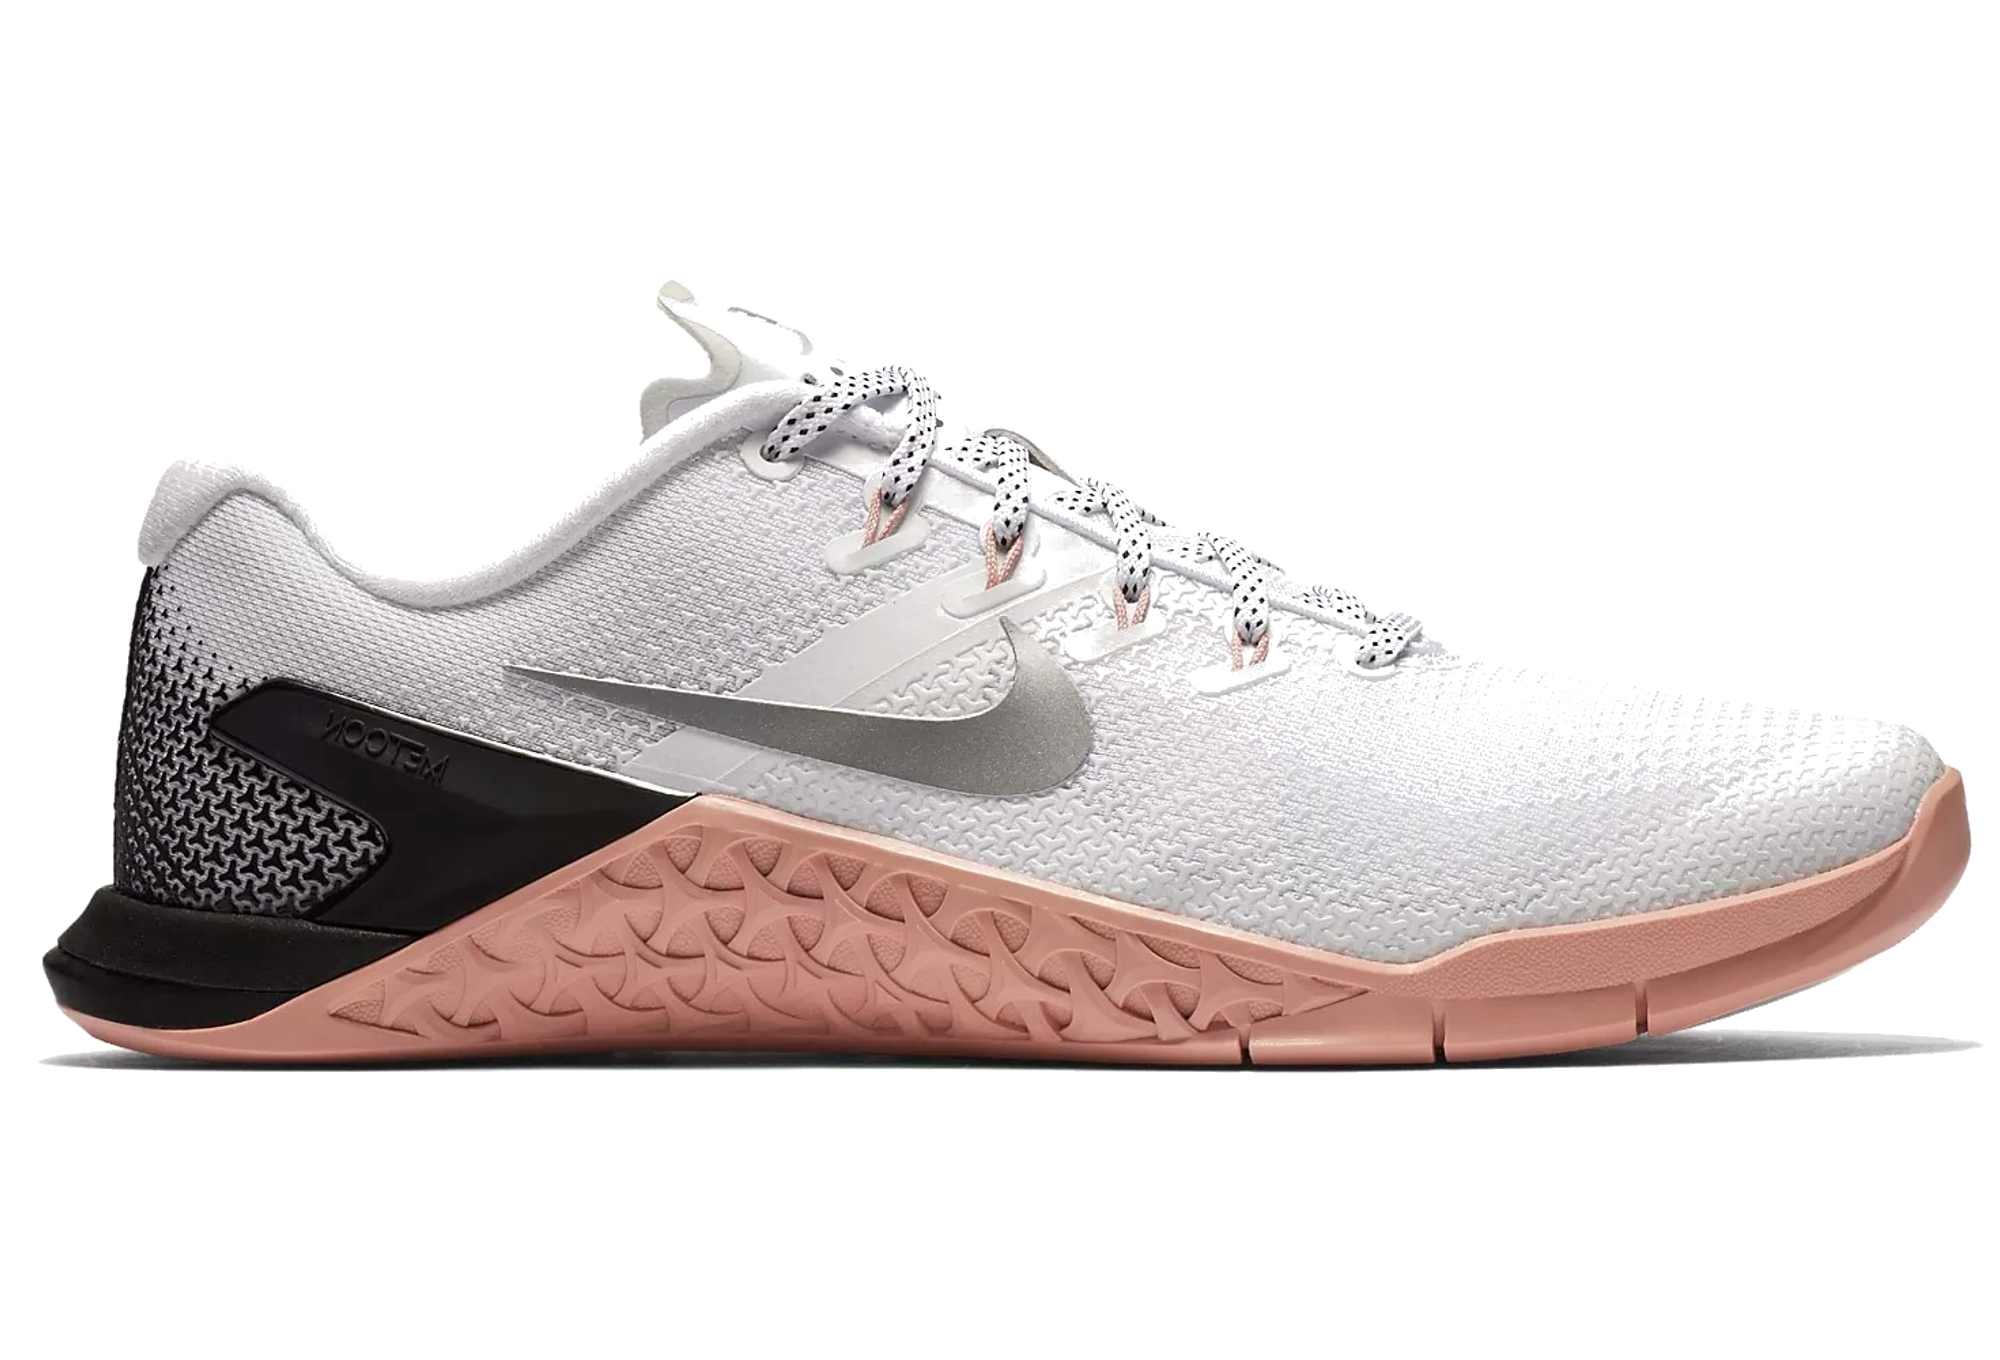 Chaussures de Cross Training Nike Metcon 4 Blanc Rose Femme